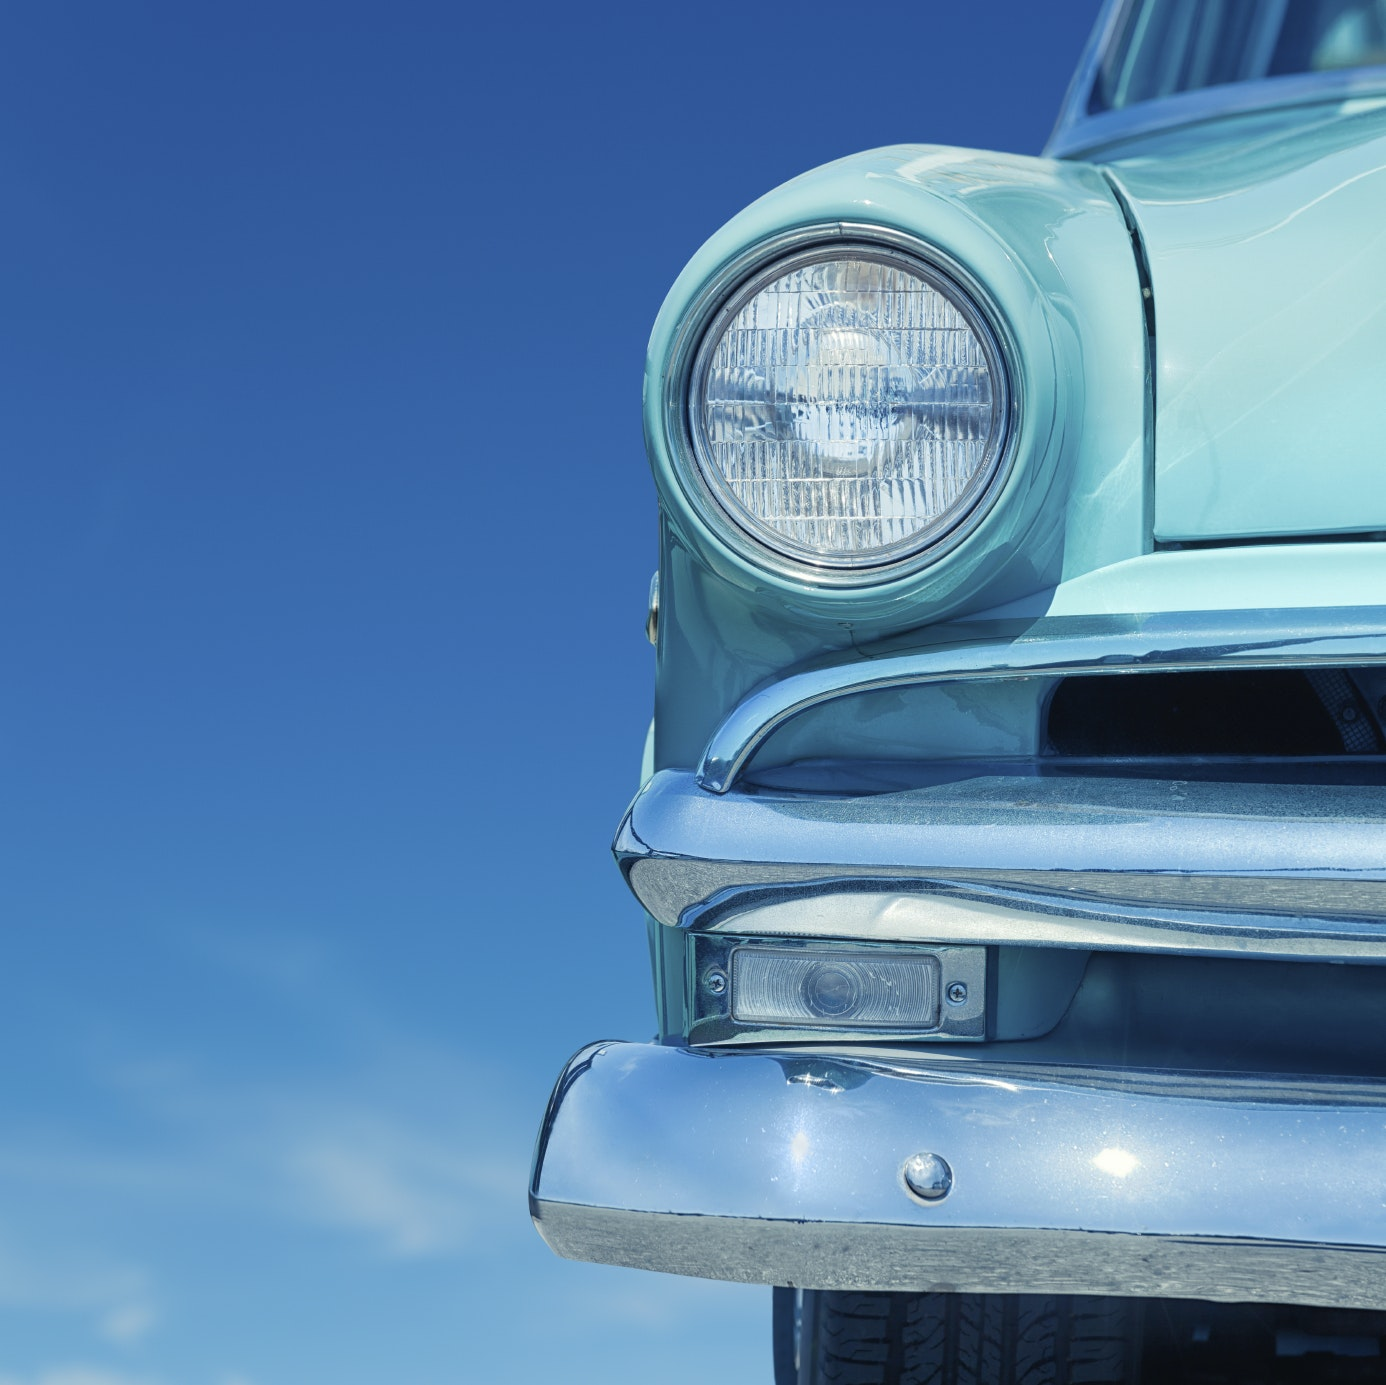 The Value of a Used Car